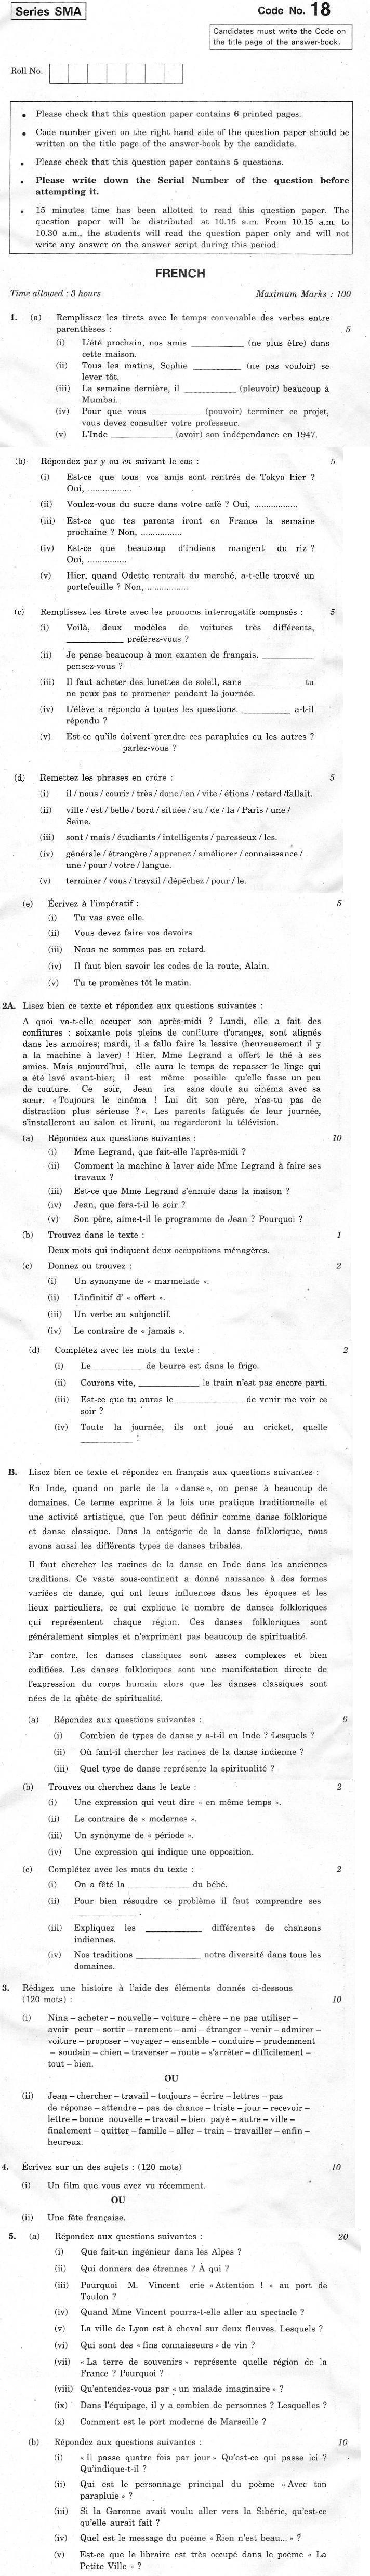 CBSE Class XII Previous Year Question Paper 2012 French